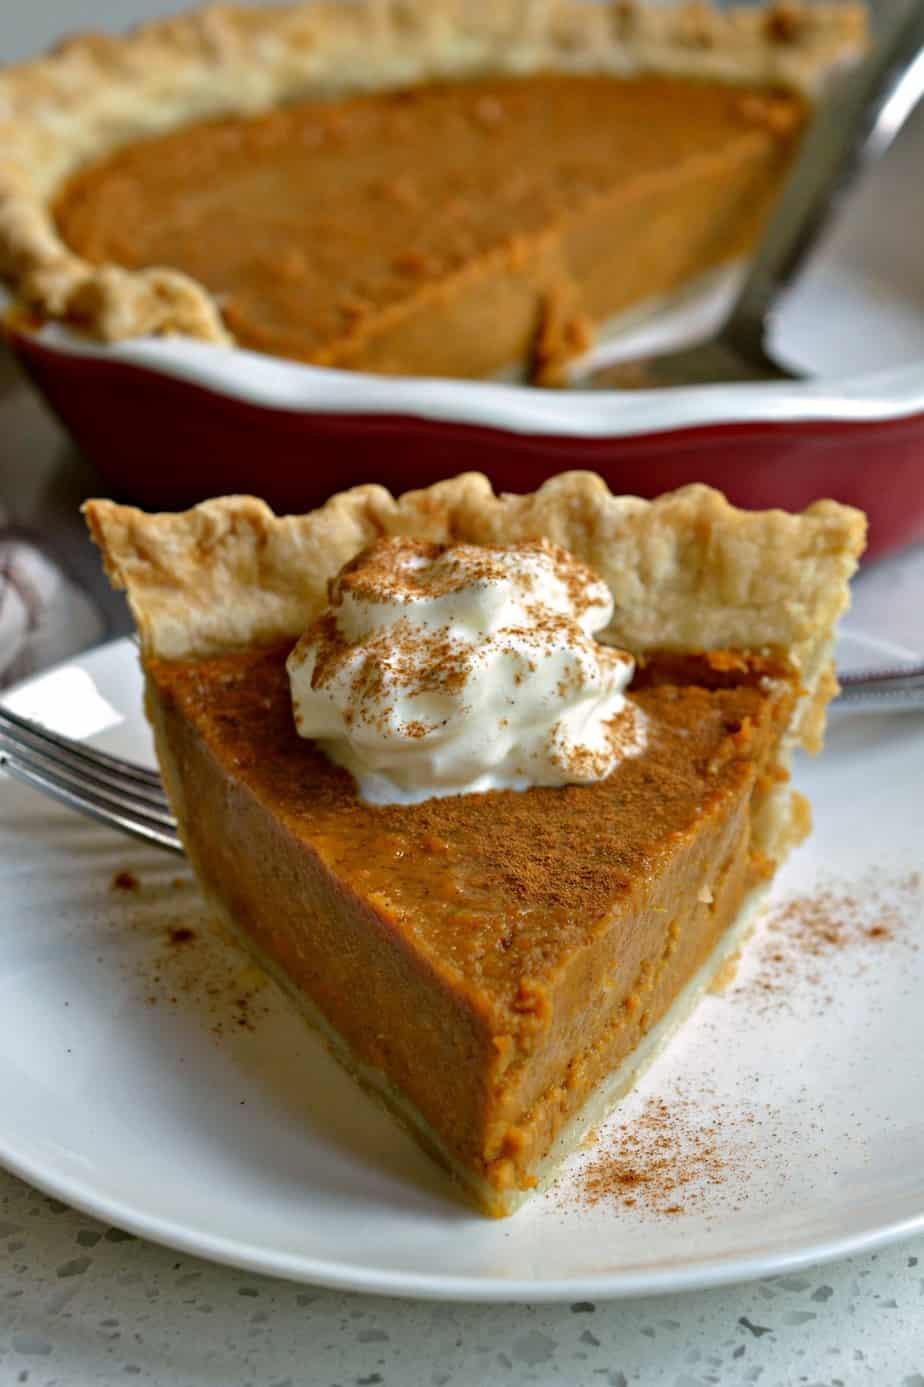 This Sweet Potato Pie is always a welcome fall tradition with a tender flaky crust and the perfect balance of autumn spices.